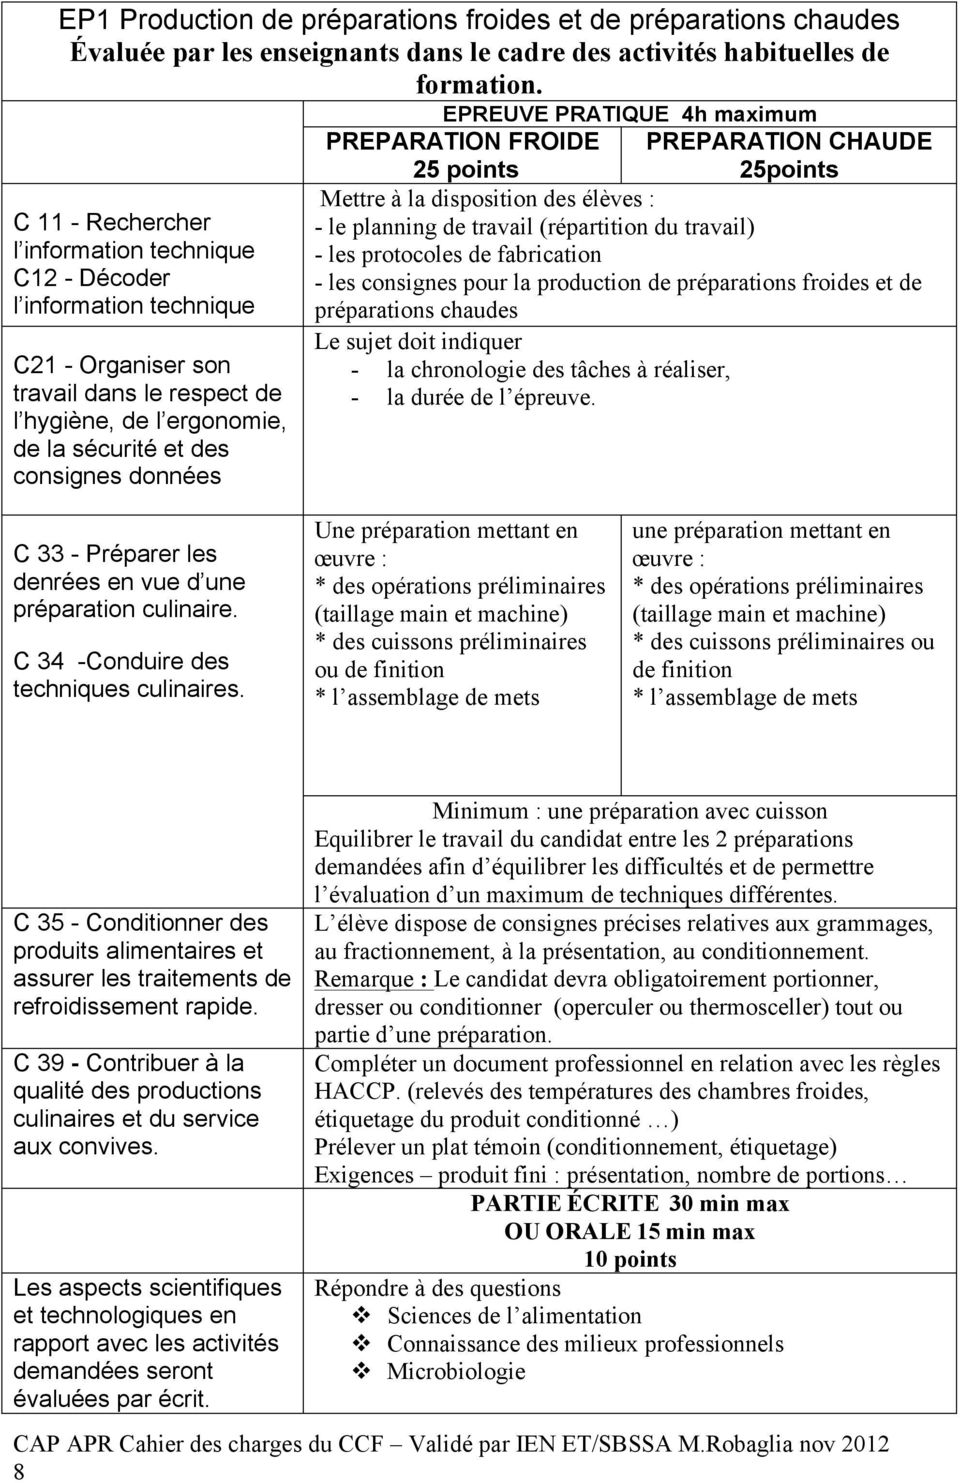 EPREUVE PRATIQUE 4h maximum PREPARATION FROIDE PREPARATION CHAUDE 25 points 25points Mettre à la disposition des élèves : - le planning de travail (répartition du travail) - les protocoles de